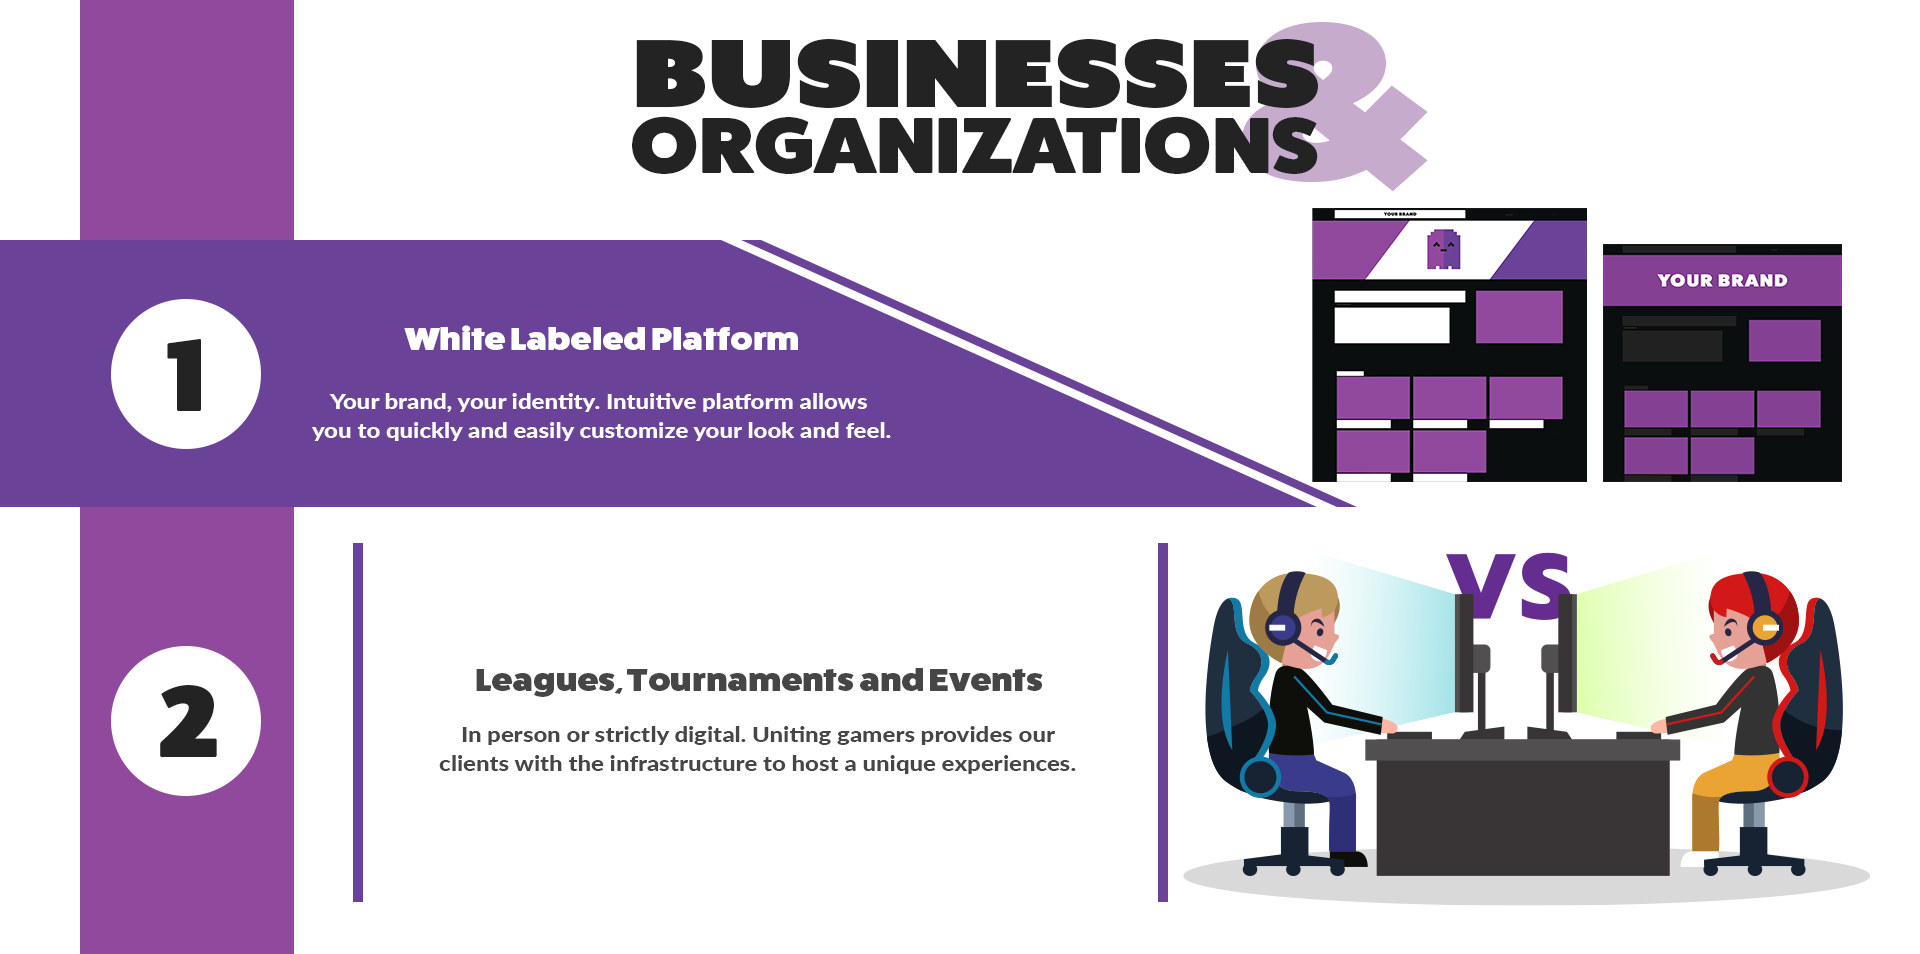 Businesses and Organizations